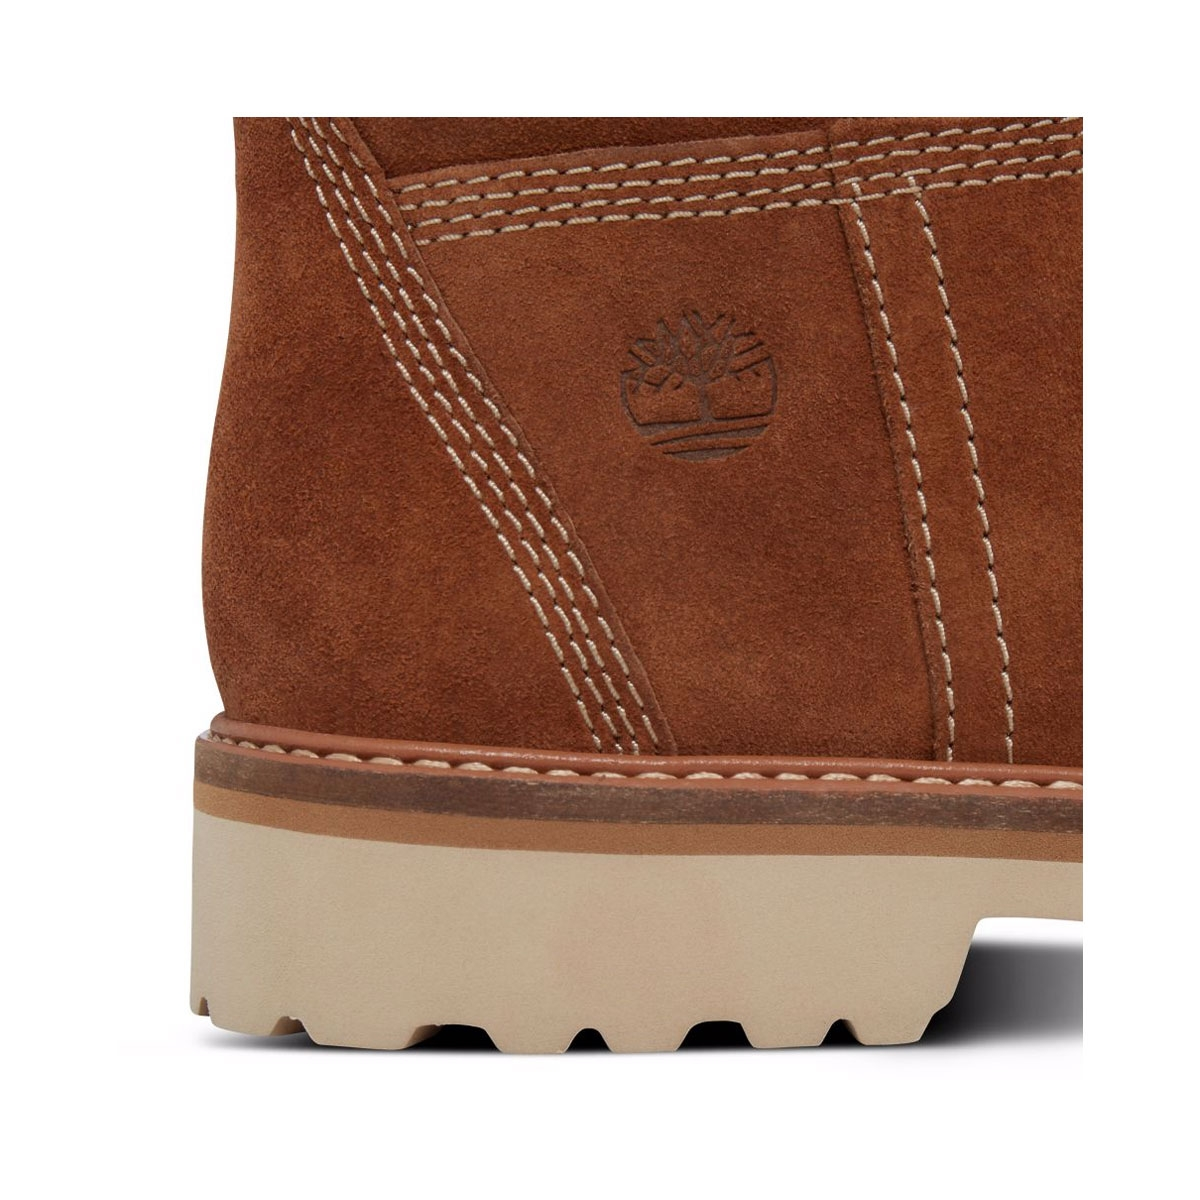 26053c167f64d ... Image of Timberland Chamonix Valley WP Winter Boots (Women's) - Dark  Rubber Suede ...